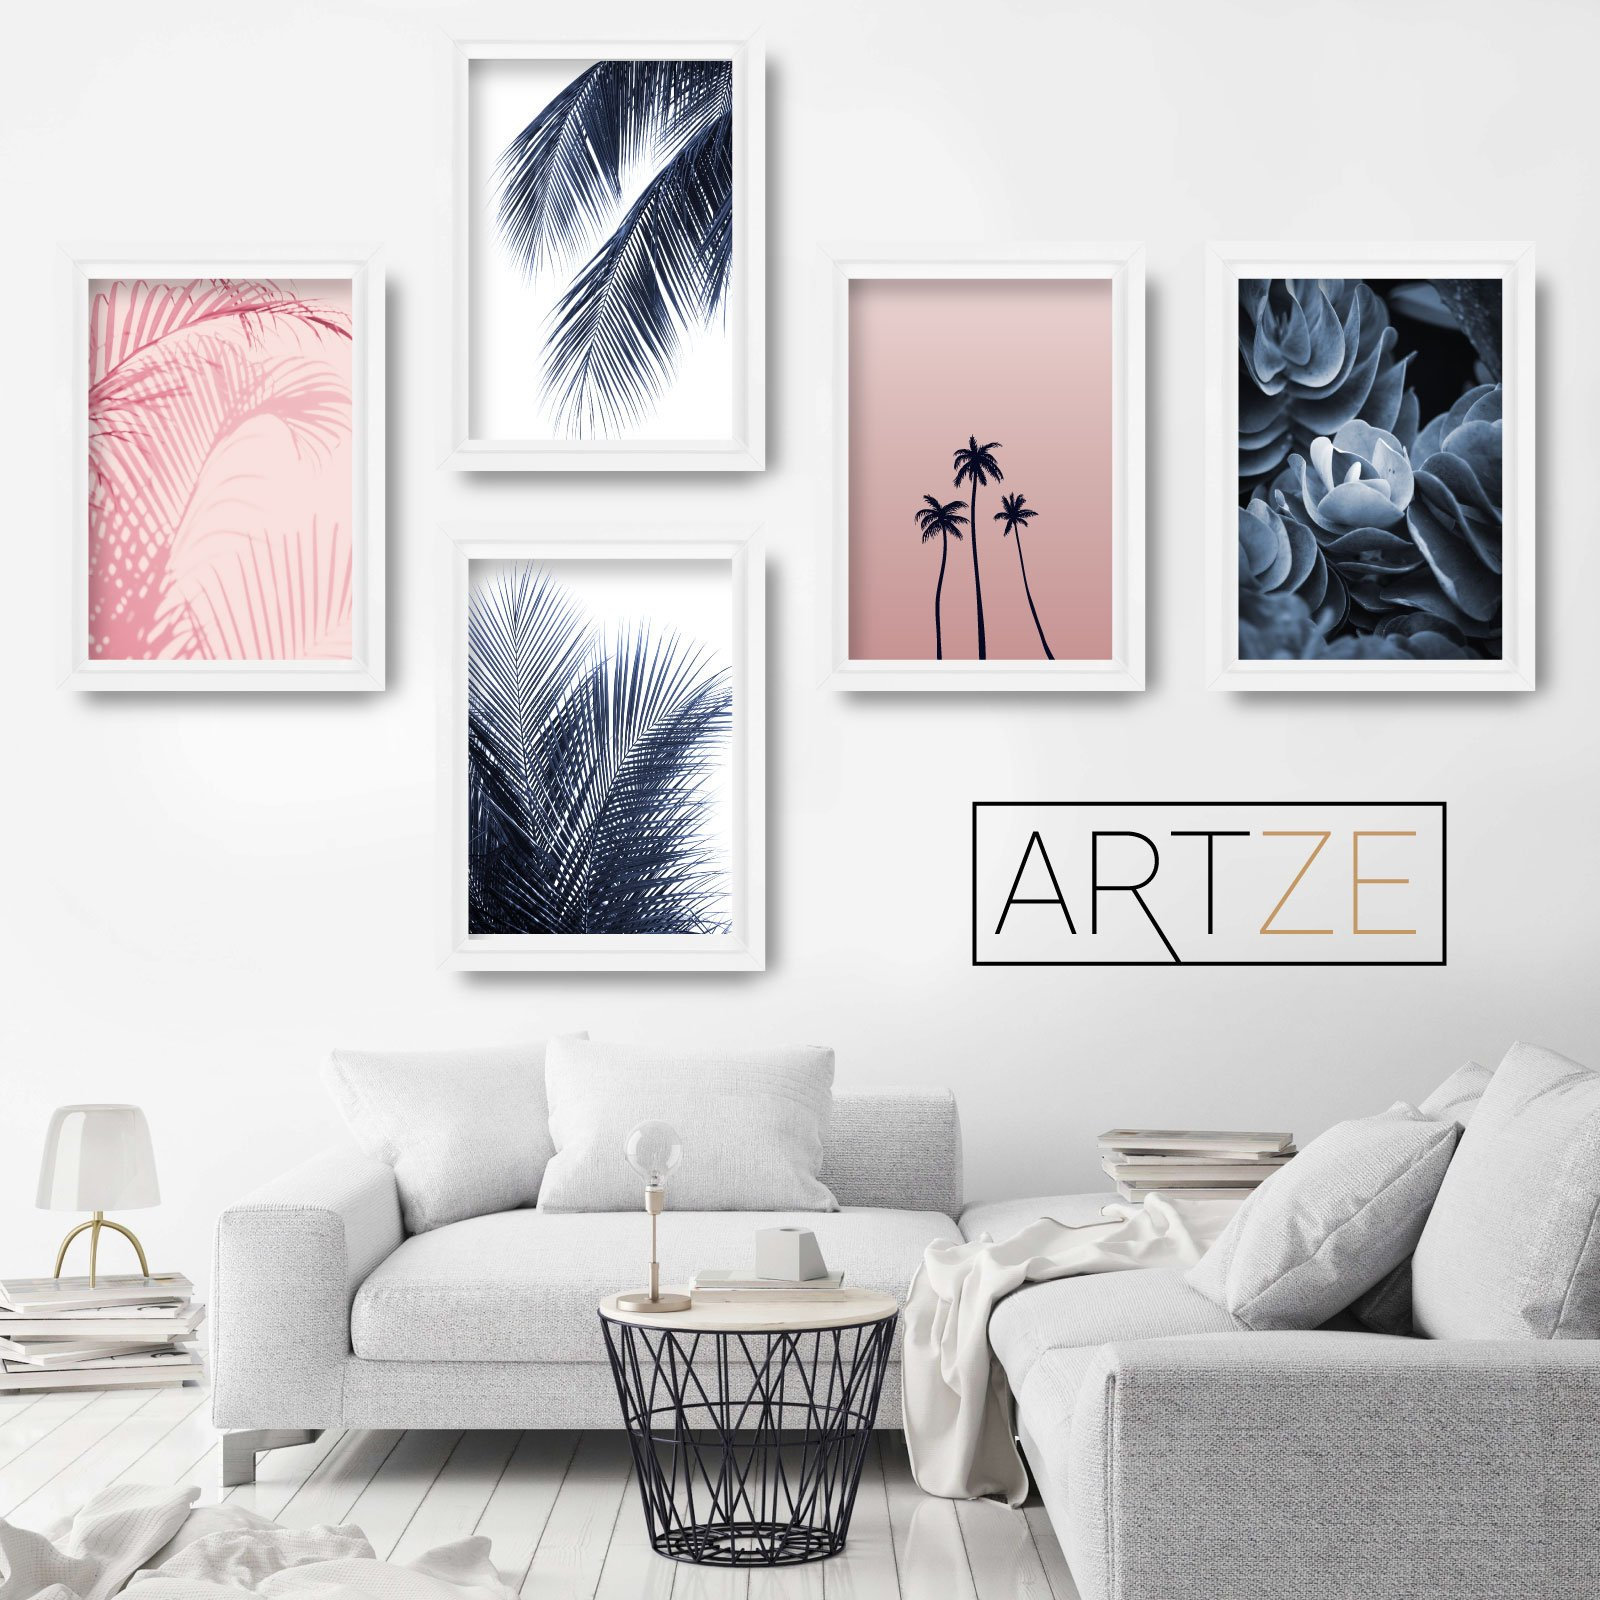 Set of 5 gallery navy blush pink wall art prints original abstract botanical palm tree wall floral pictures posters artwork